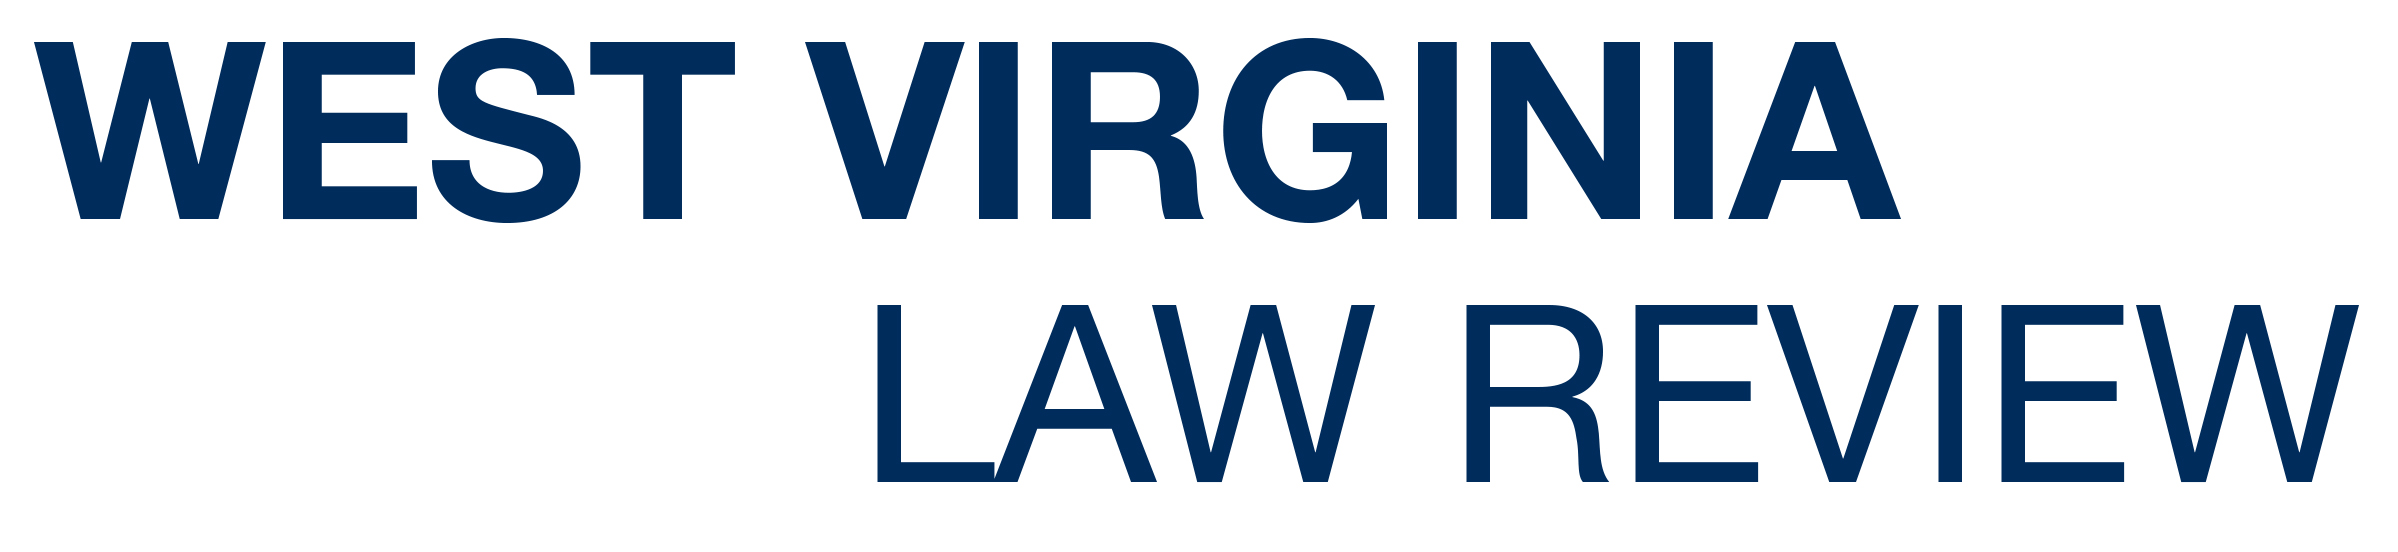 West Virginia Law Review